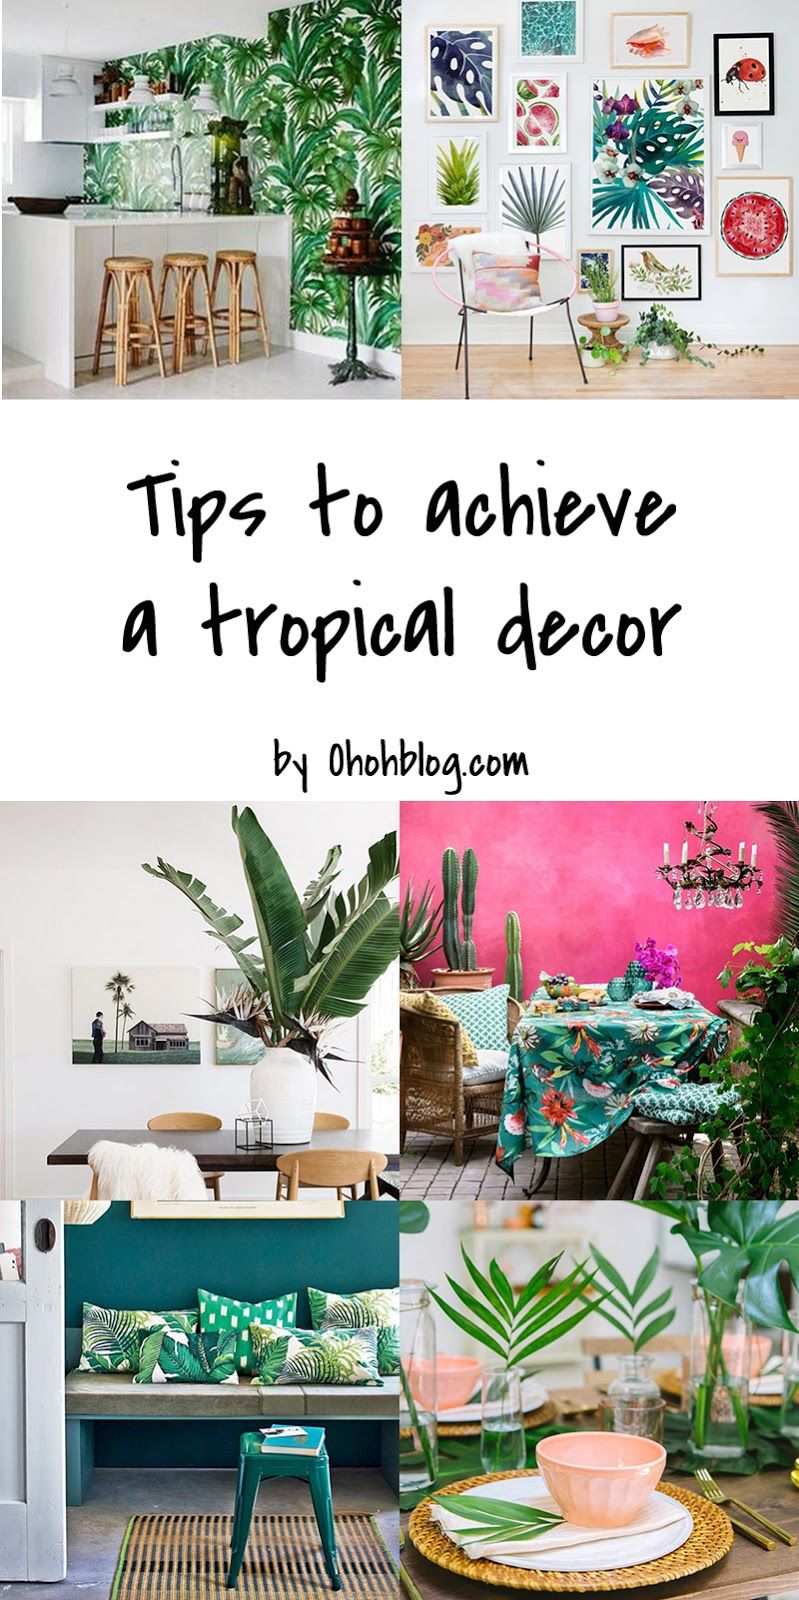 Miami Inspired Tropical Decor Ideas Tropical Home Decor Tropical Decor Decor